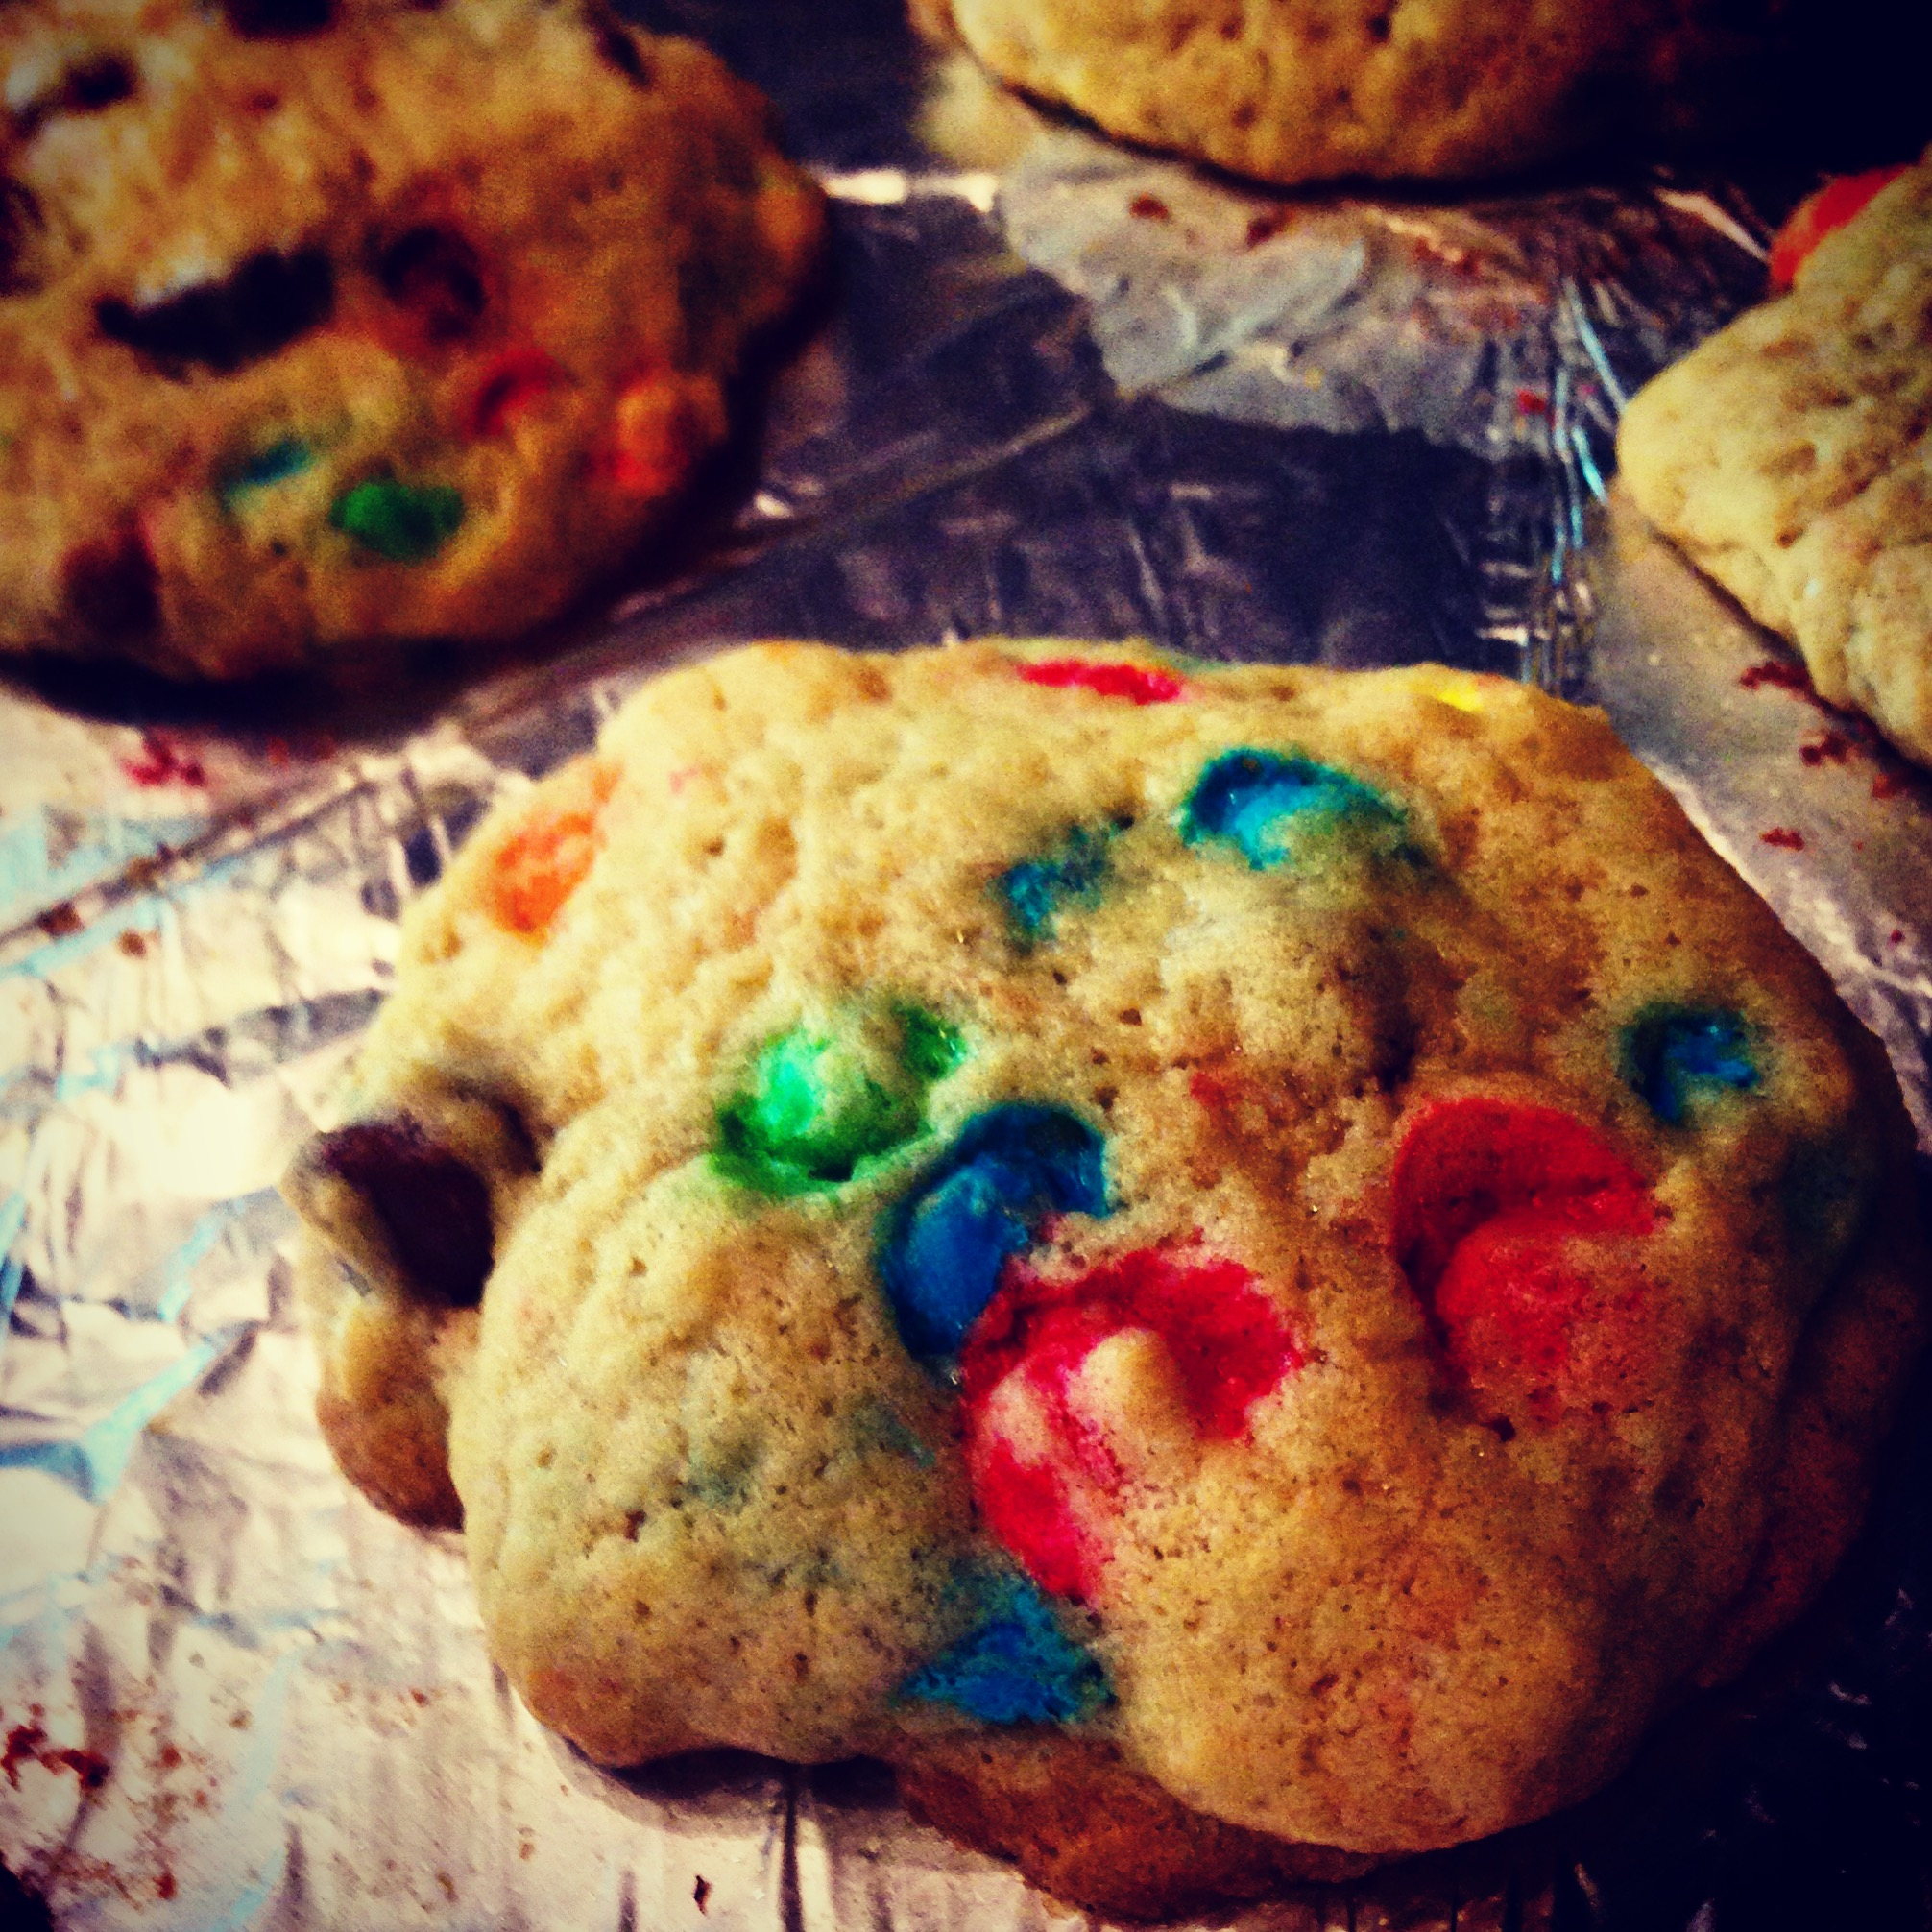 Baking up lots of love with these organic-ish m&m cookies to hopefully bring some smiles tonight :)